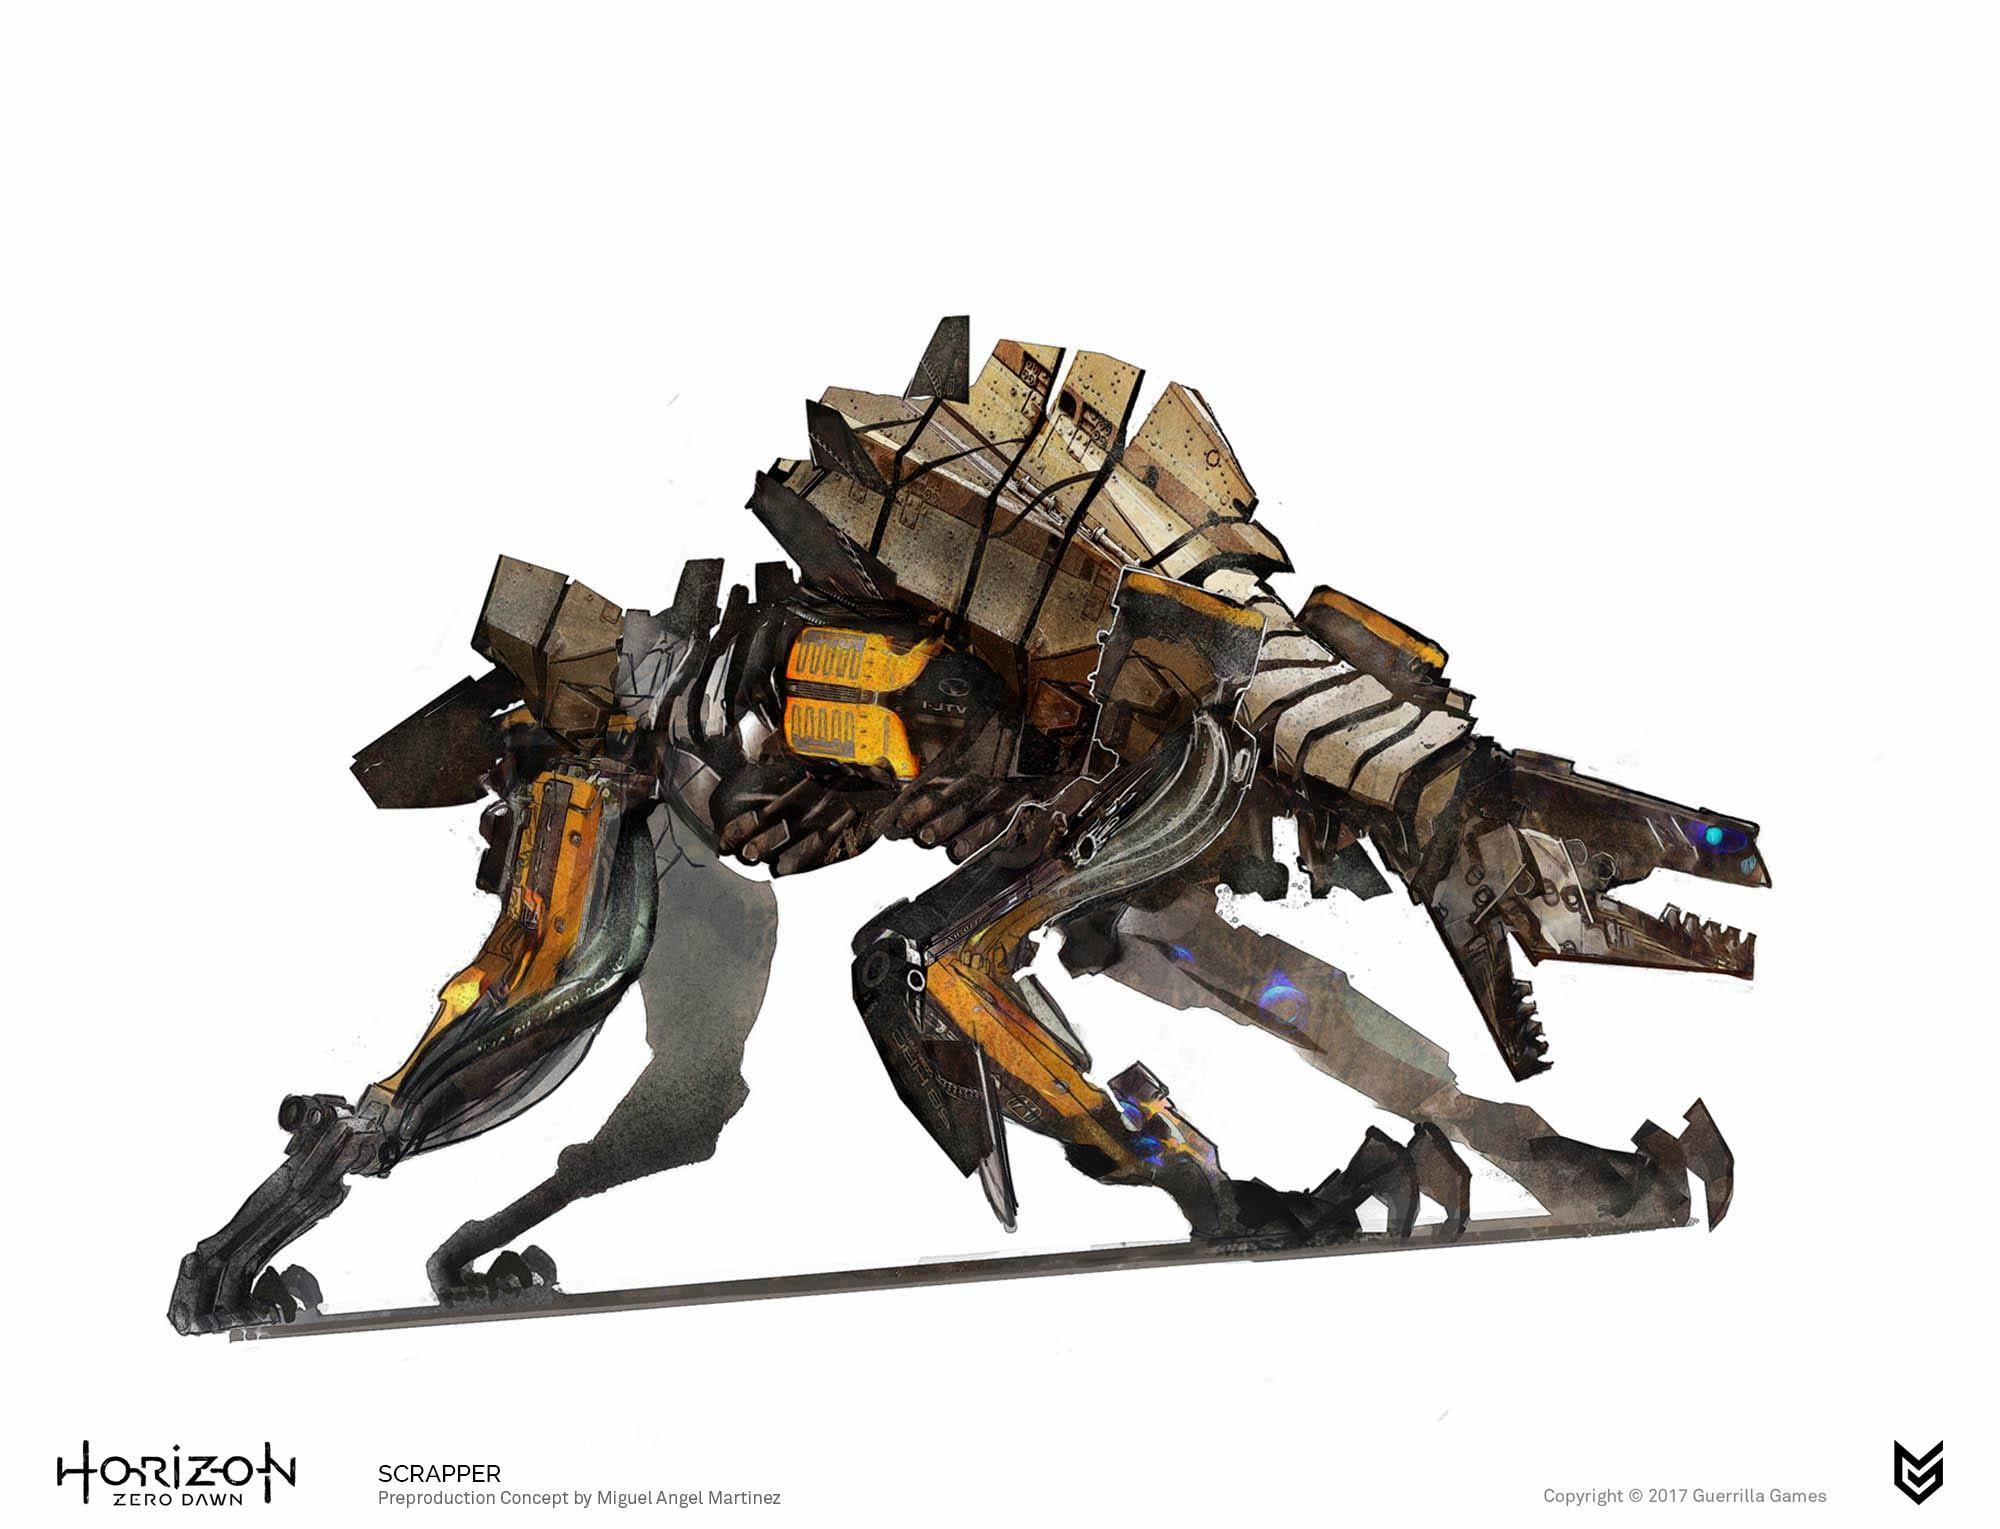 Horizon-Zero-Dawn-Scrapper-robot-concept-art-Miguel-Angel-Martinez